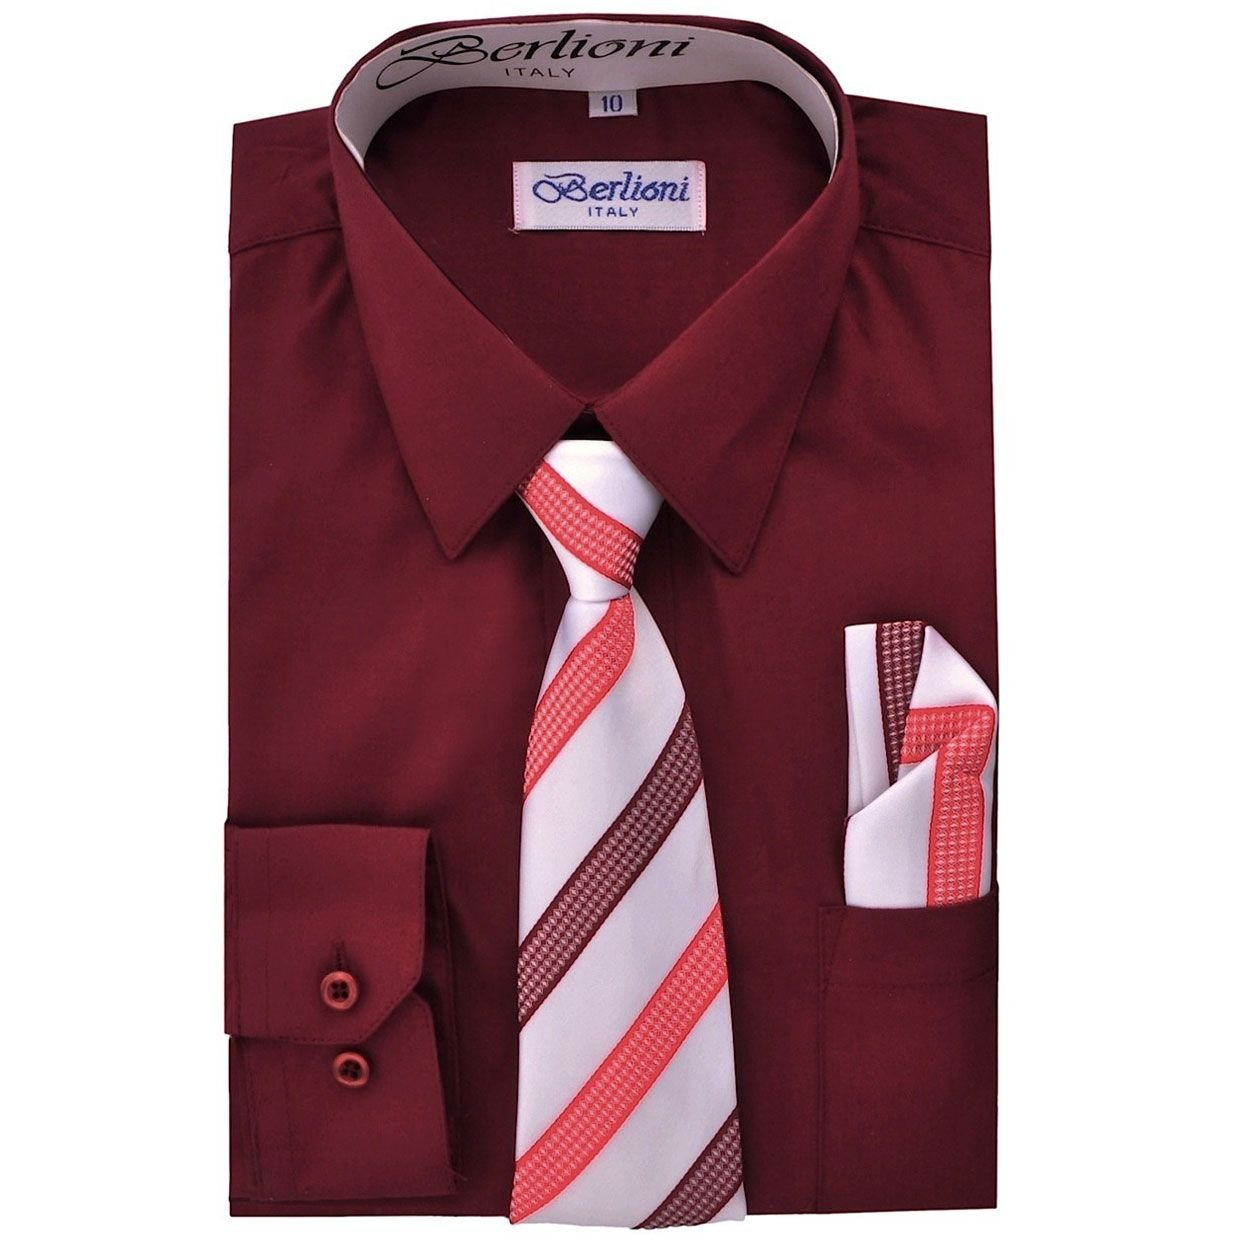 Burgundy Boys Fashion Solid Dress Shirt Tie and Hanky Set